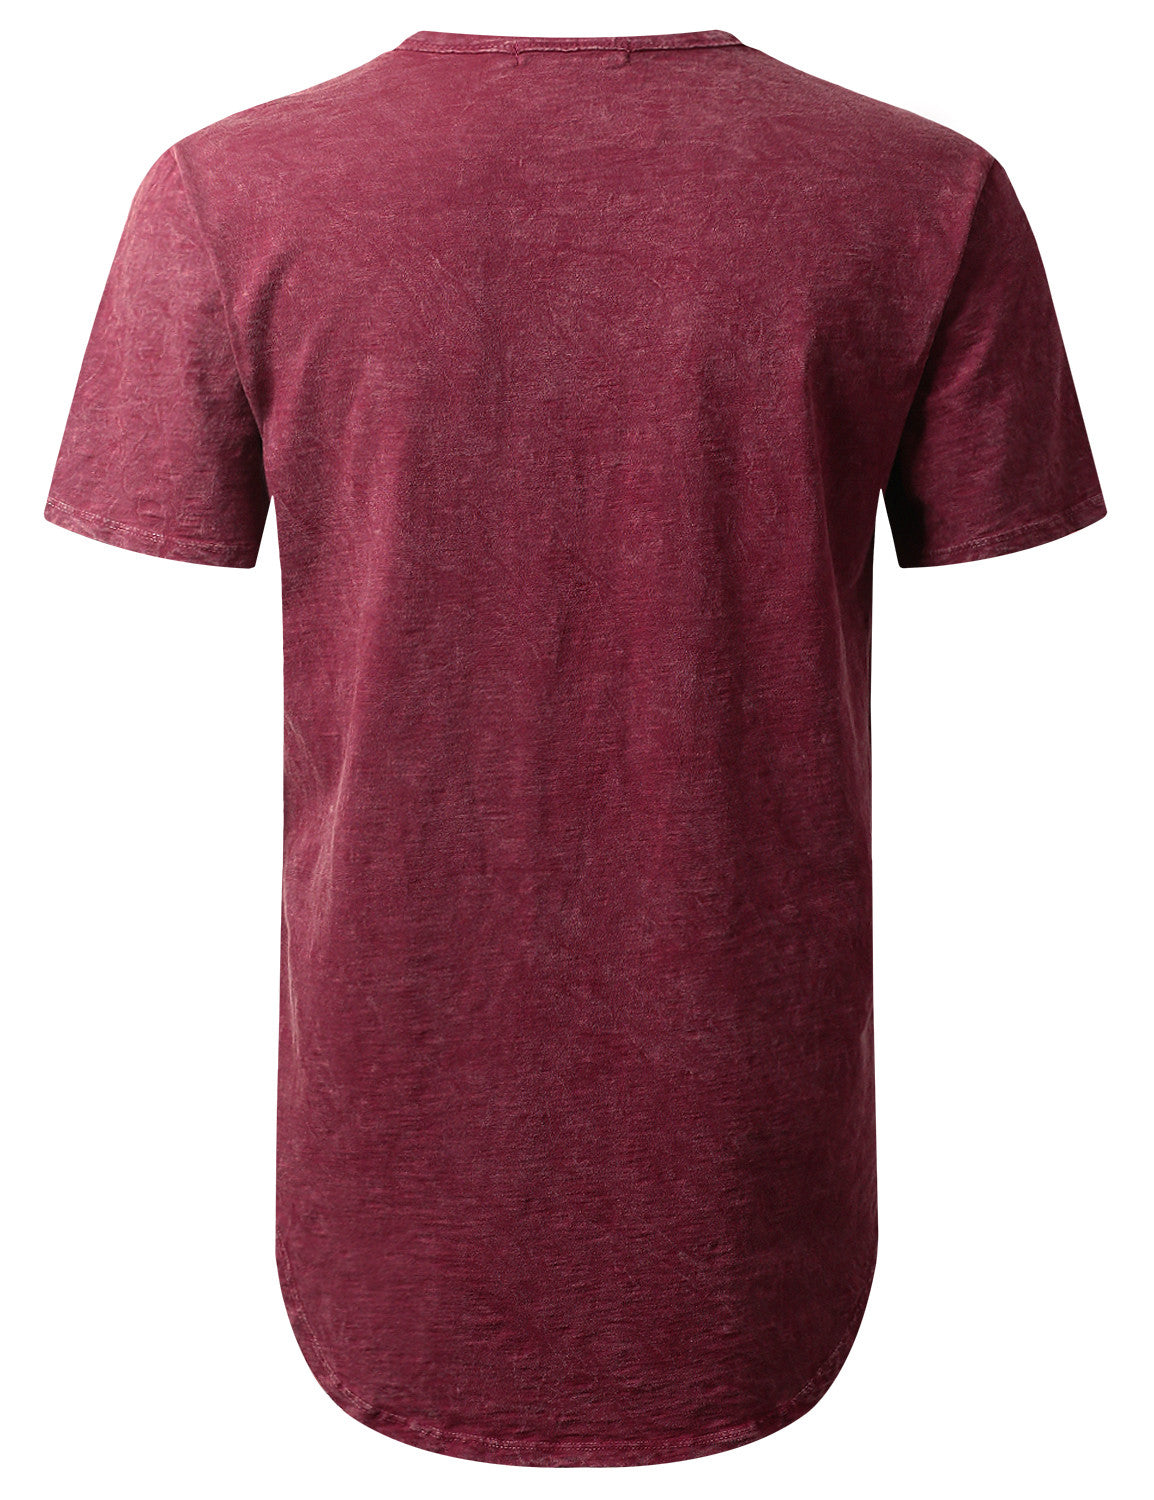 BURGUNDY Cotton Slub Longline T-shirt - URBANCREWS